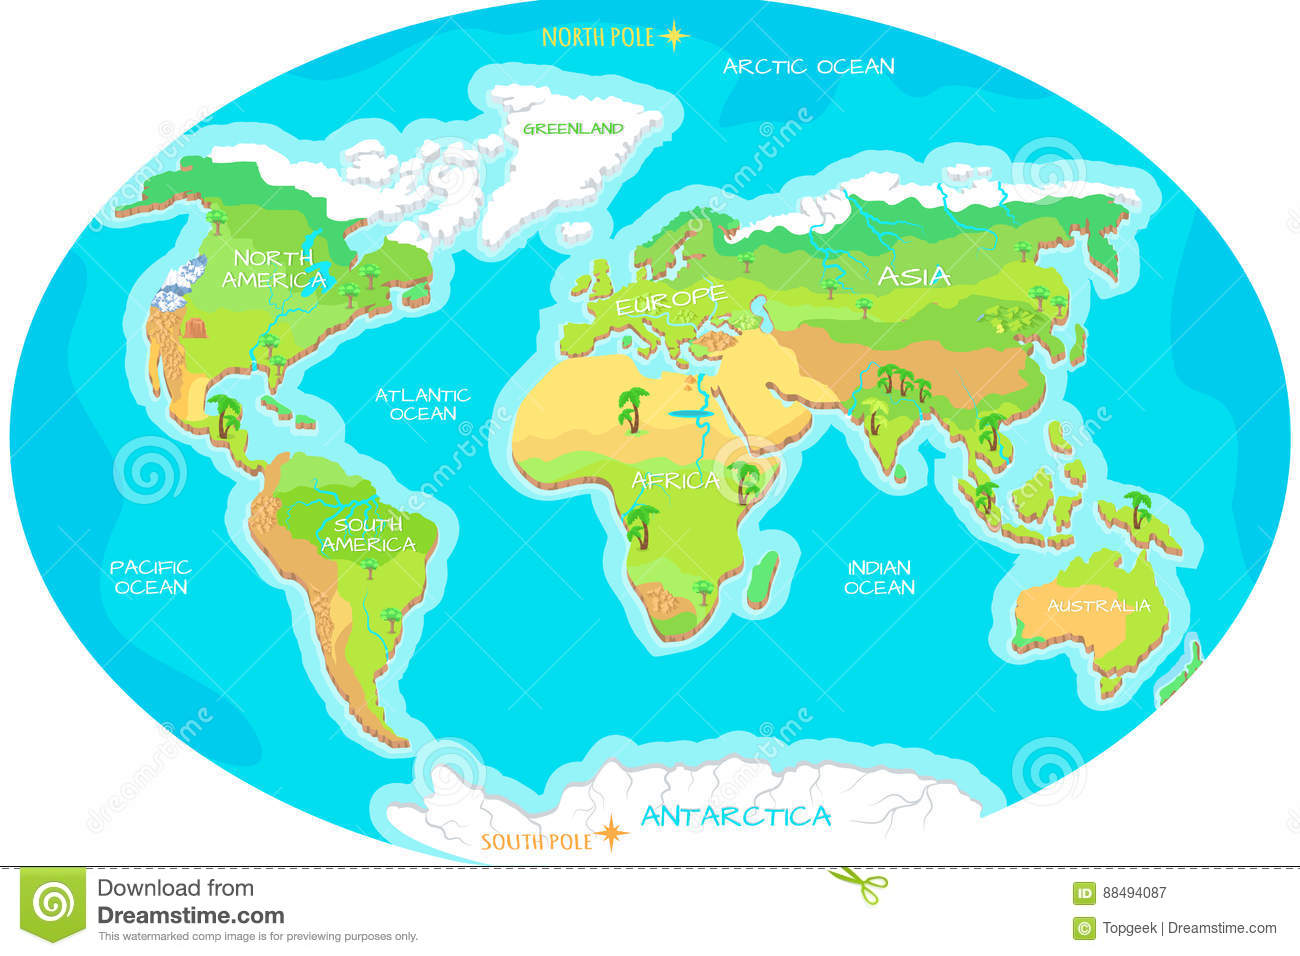 Continents oceans on map of world our planet stock vector continents oceans on map of world our planet gumiabroncs Image collections